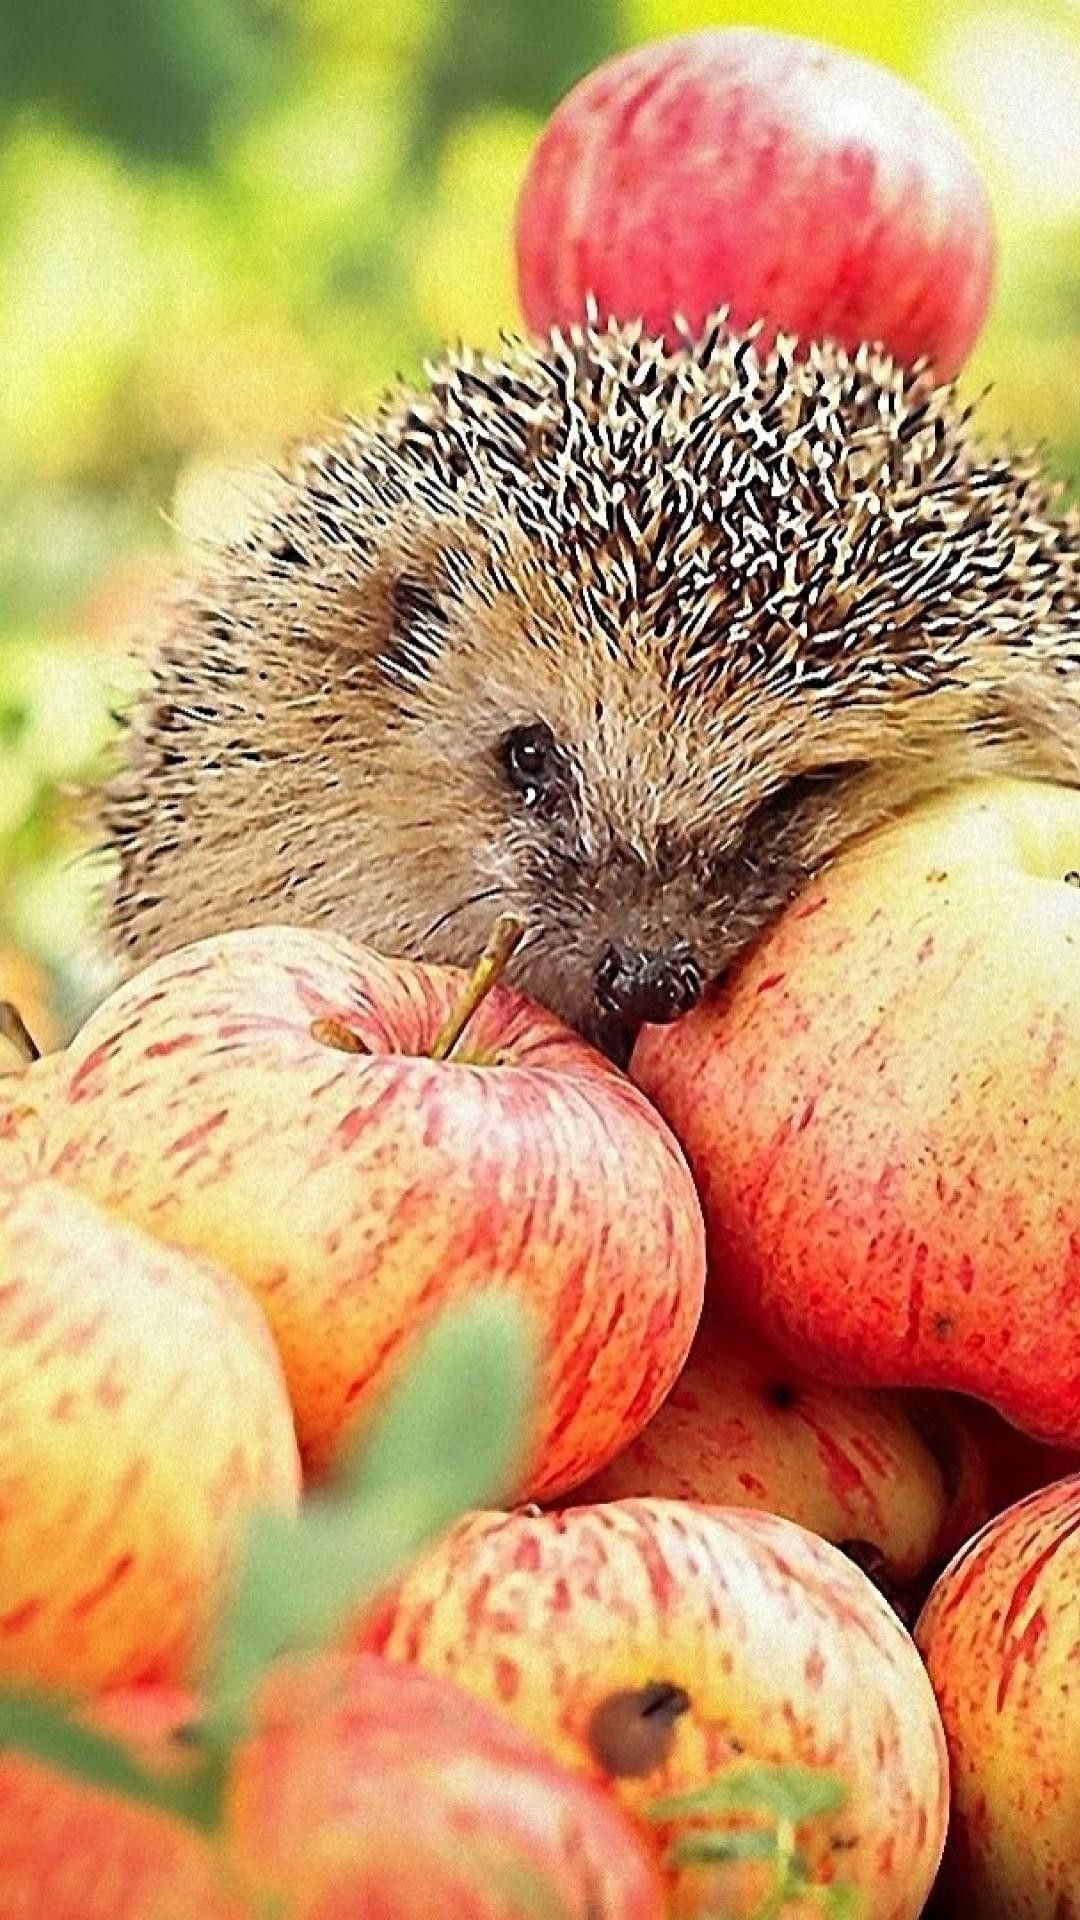 Hedgehog Wallpapers 03 Best Free Hedgehog Images For Mac Amazing Hd Wallpapers Wallpaper Image